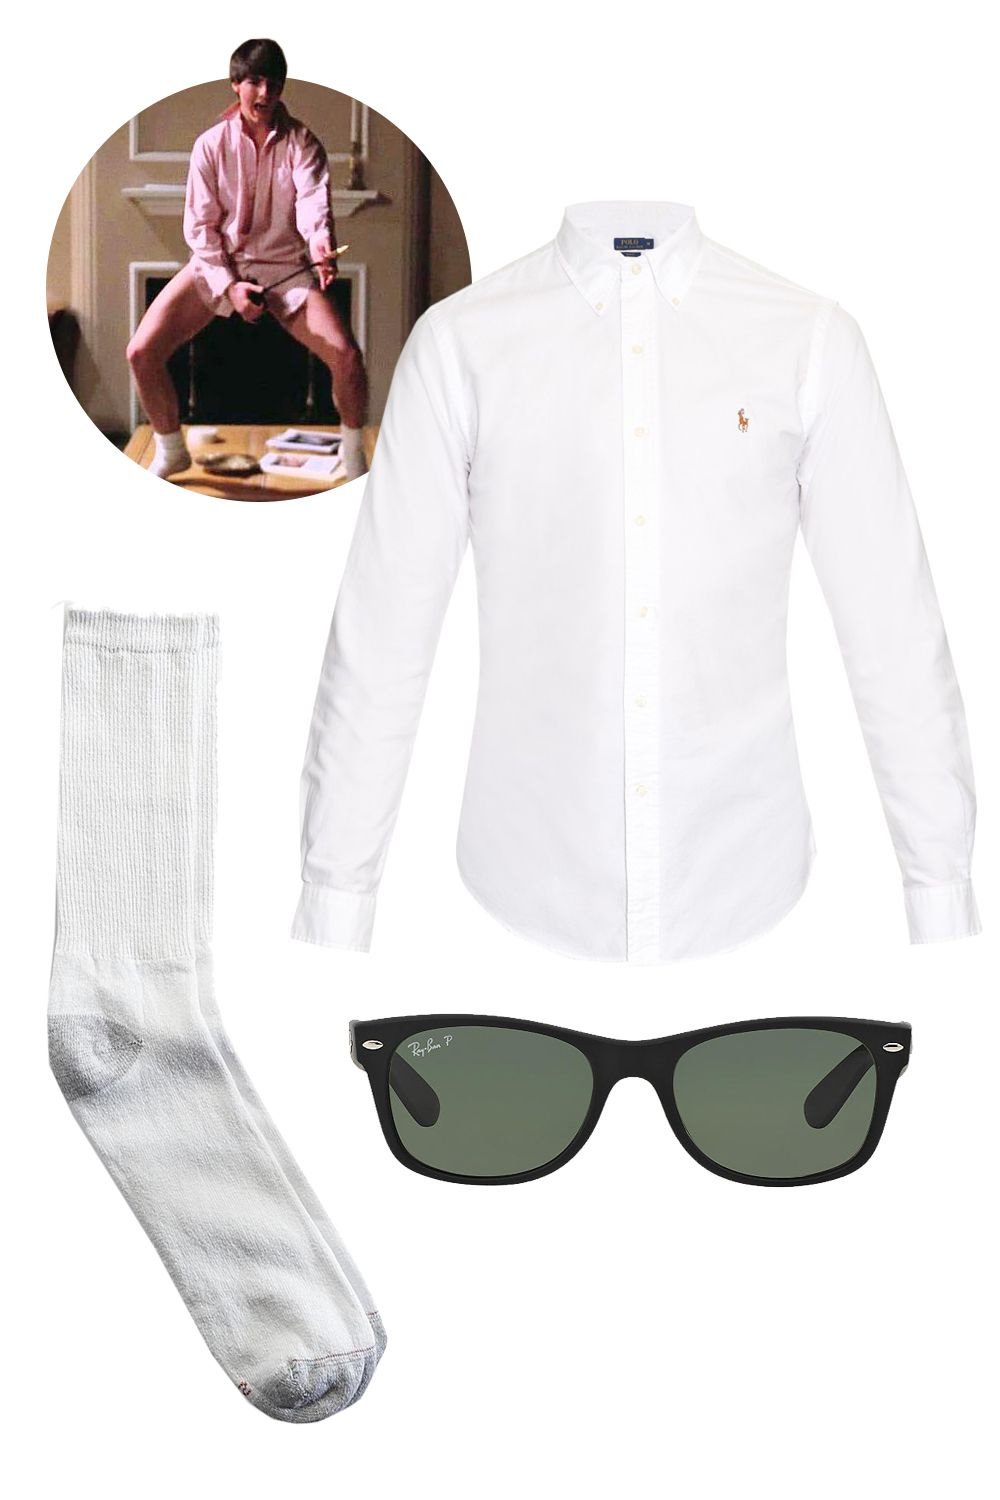 "<p>""My last-minute Halloween costume is always Tom Cruise from the famous <em>Risky Business</em> scene: An oversize men's shirt, sunglasses, and white tube socks.""</p><p>Polo Ralph Lauren Slim-Fit Oxford Shirt, $90; <a href=""http://www.matchesfashion.com/us/products/Polo-Ralph-Lauren-Slim-fit-oxford-shirt-1008683#"">matchesfashion.com</a><br>Hanes Men Sport Crew Socks, $7; <a href=""http://www.kmart.com/hanes-men-39-s-sport-crew-sock-white-6/p-9990000020951211P"">kmart.com</a><br>Ray-Ban New Wayfarer, $180; <a href=""http://www.sunglasshut.com/us/8053672131581"">sunglasshut.com</a> </p>"